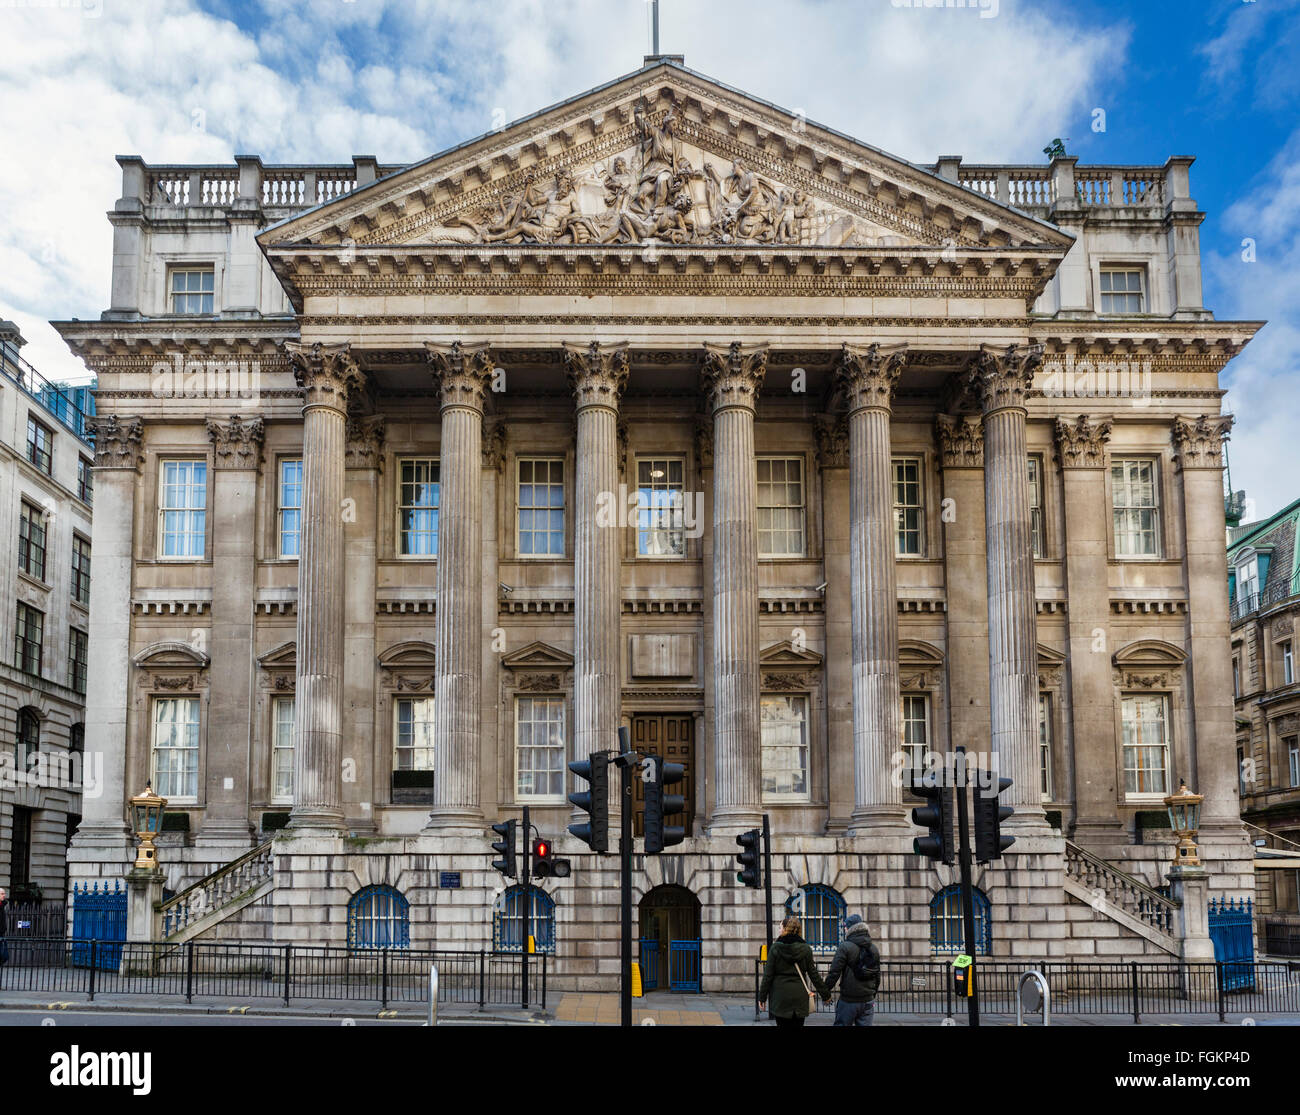 Mansion House, the official residence of the Lord Mayor of London, City of London, London, England, UK - Stock Image